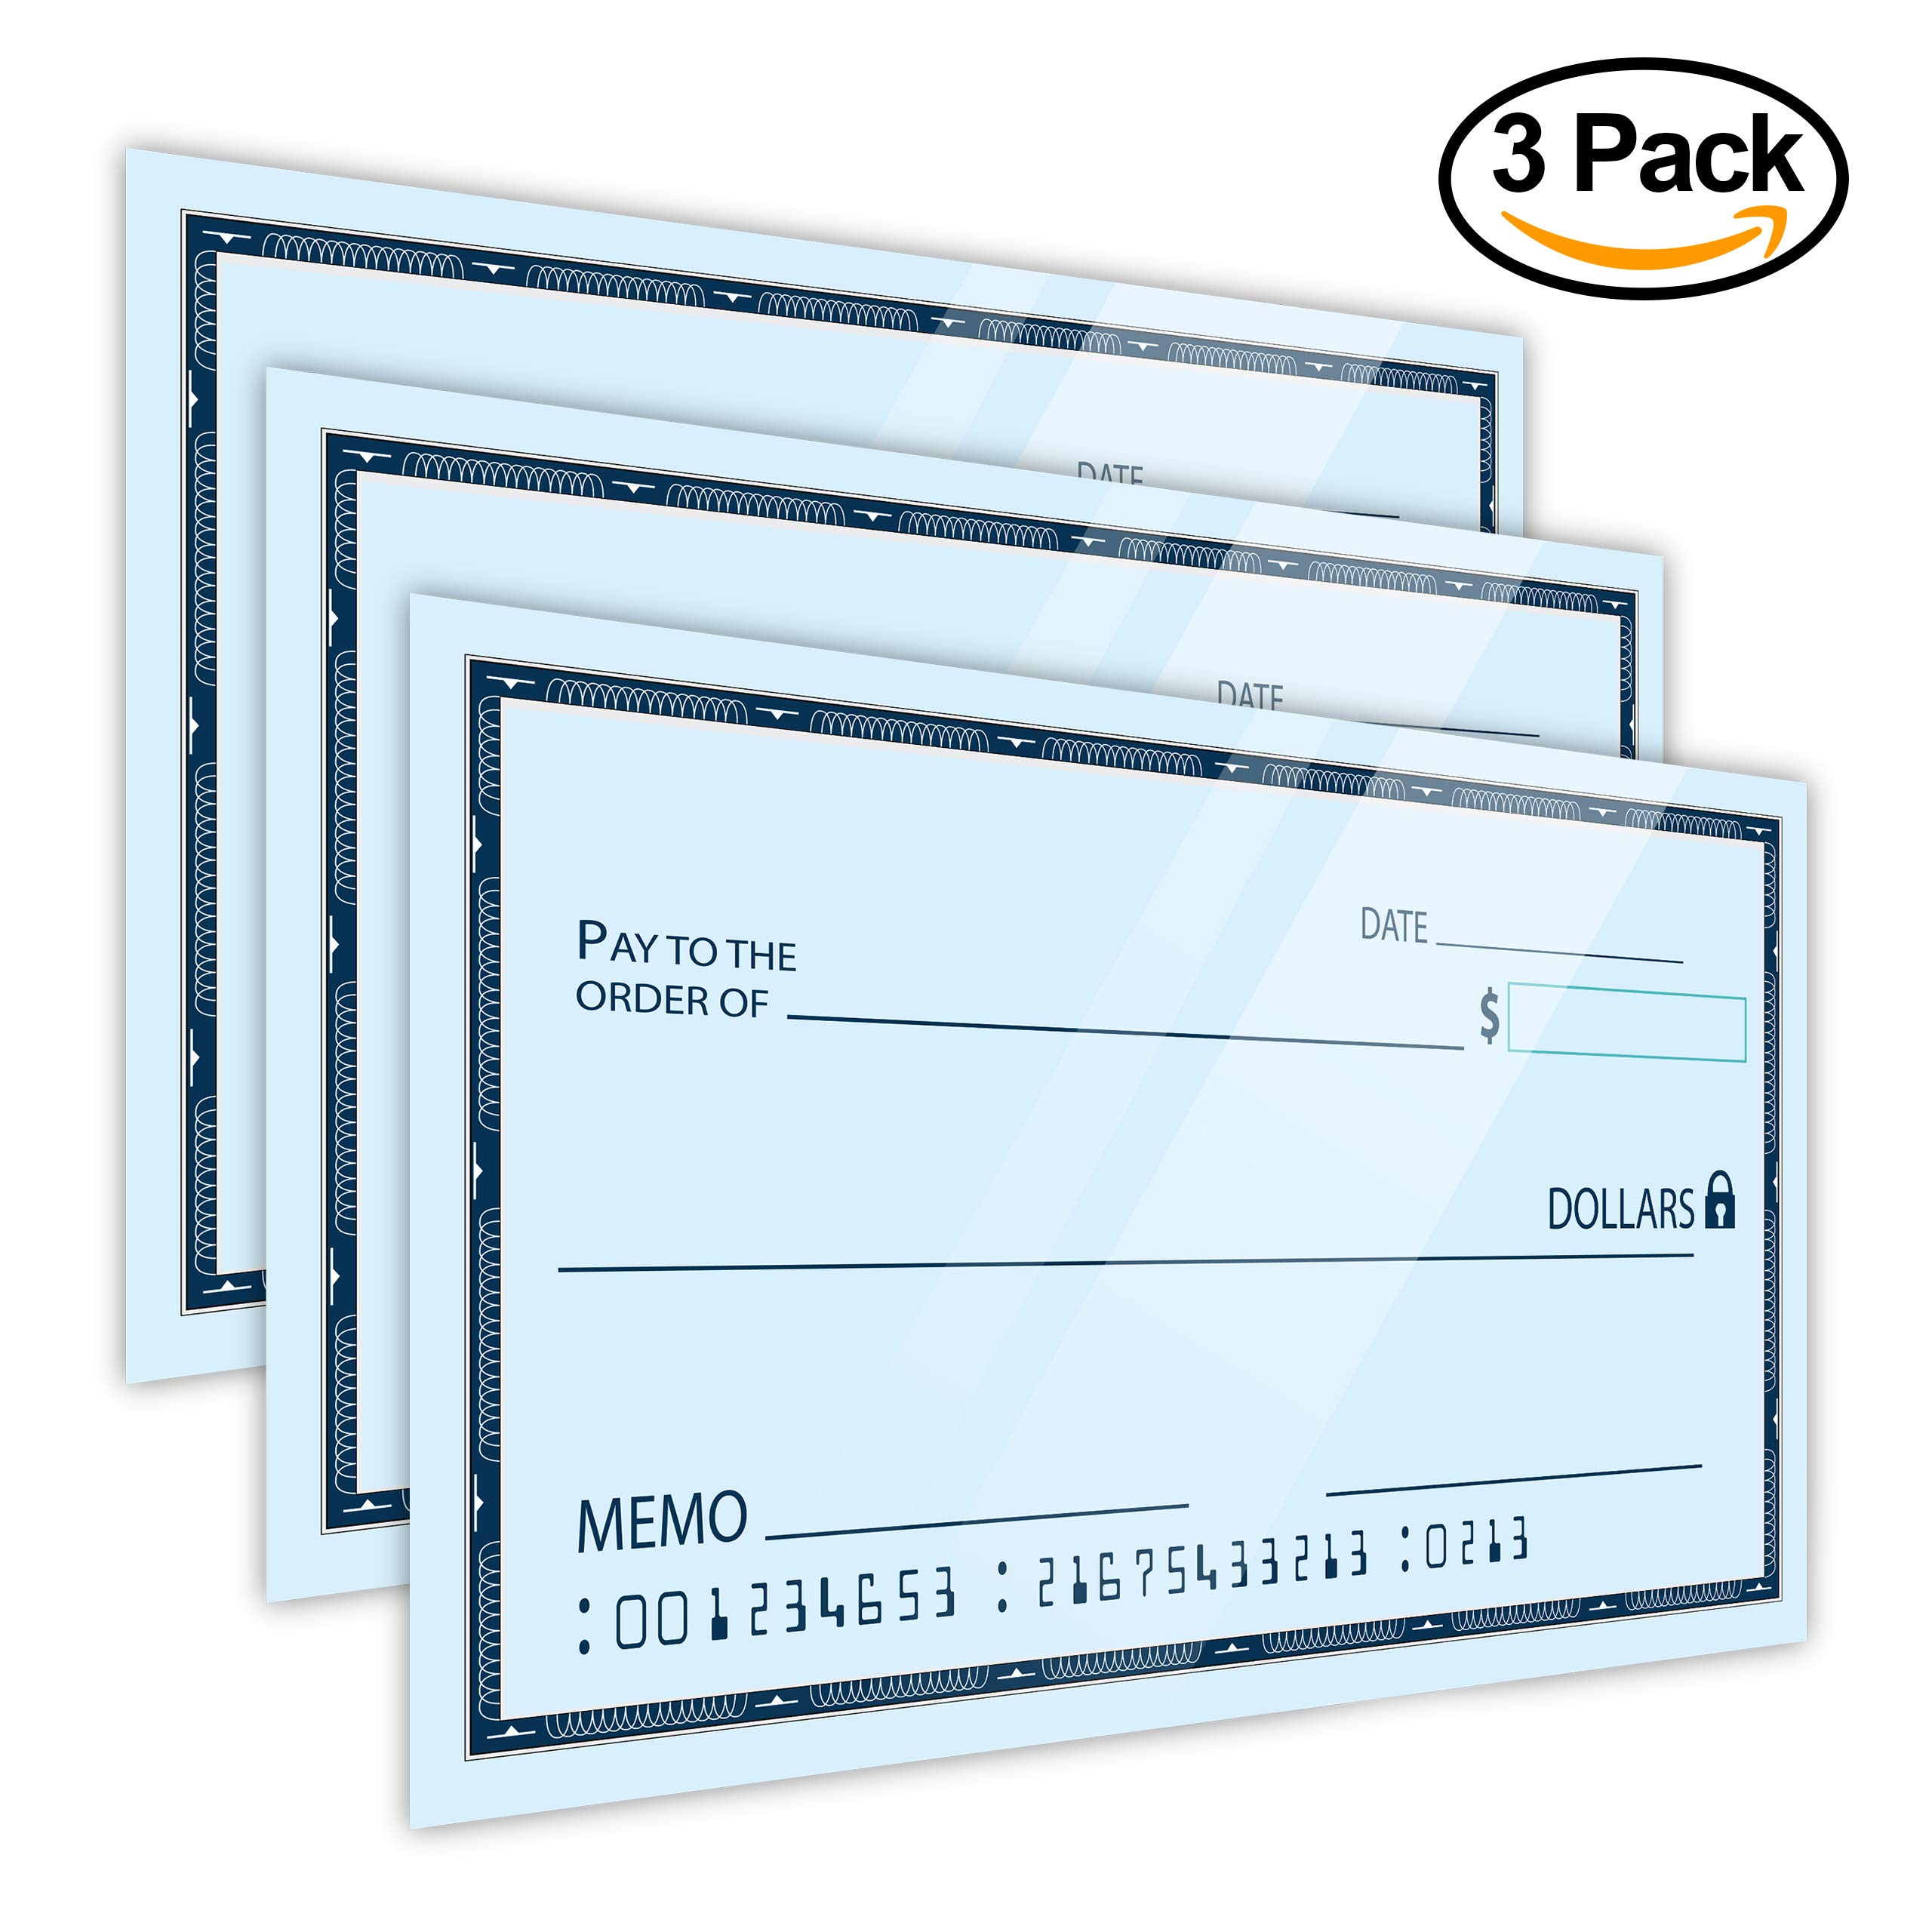 Dry Erase 16'' x 24'' Oversize Giant Check - Large Fake Checks - Reusable Big Blank Presentation Check for Charity Donation, Lottery, Raffle, Novelty, Fundraiser, Endowment and Gag Gift [Pack of 3] by JJ CARE